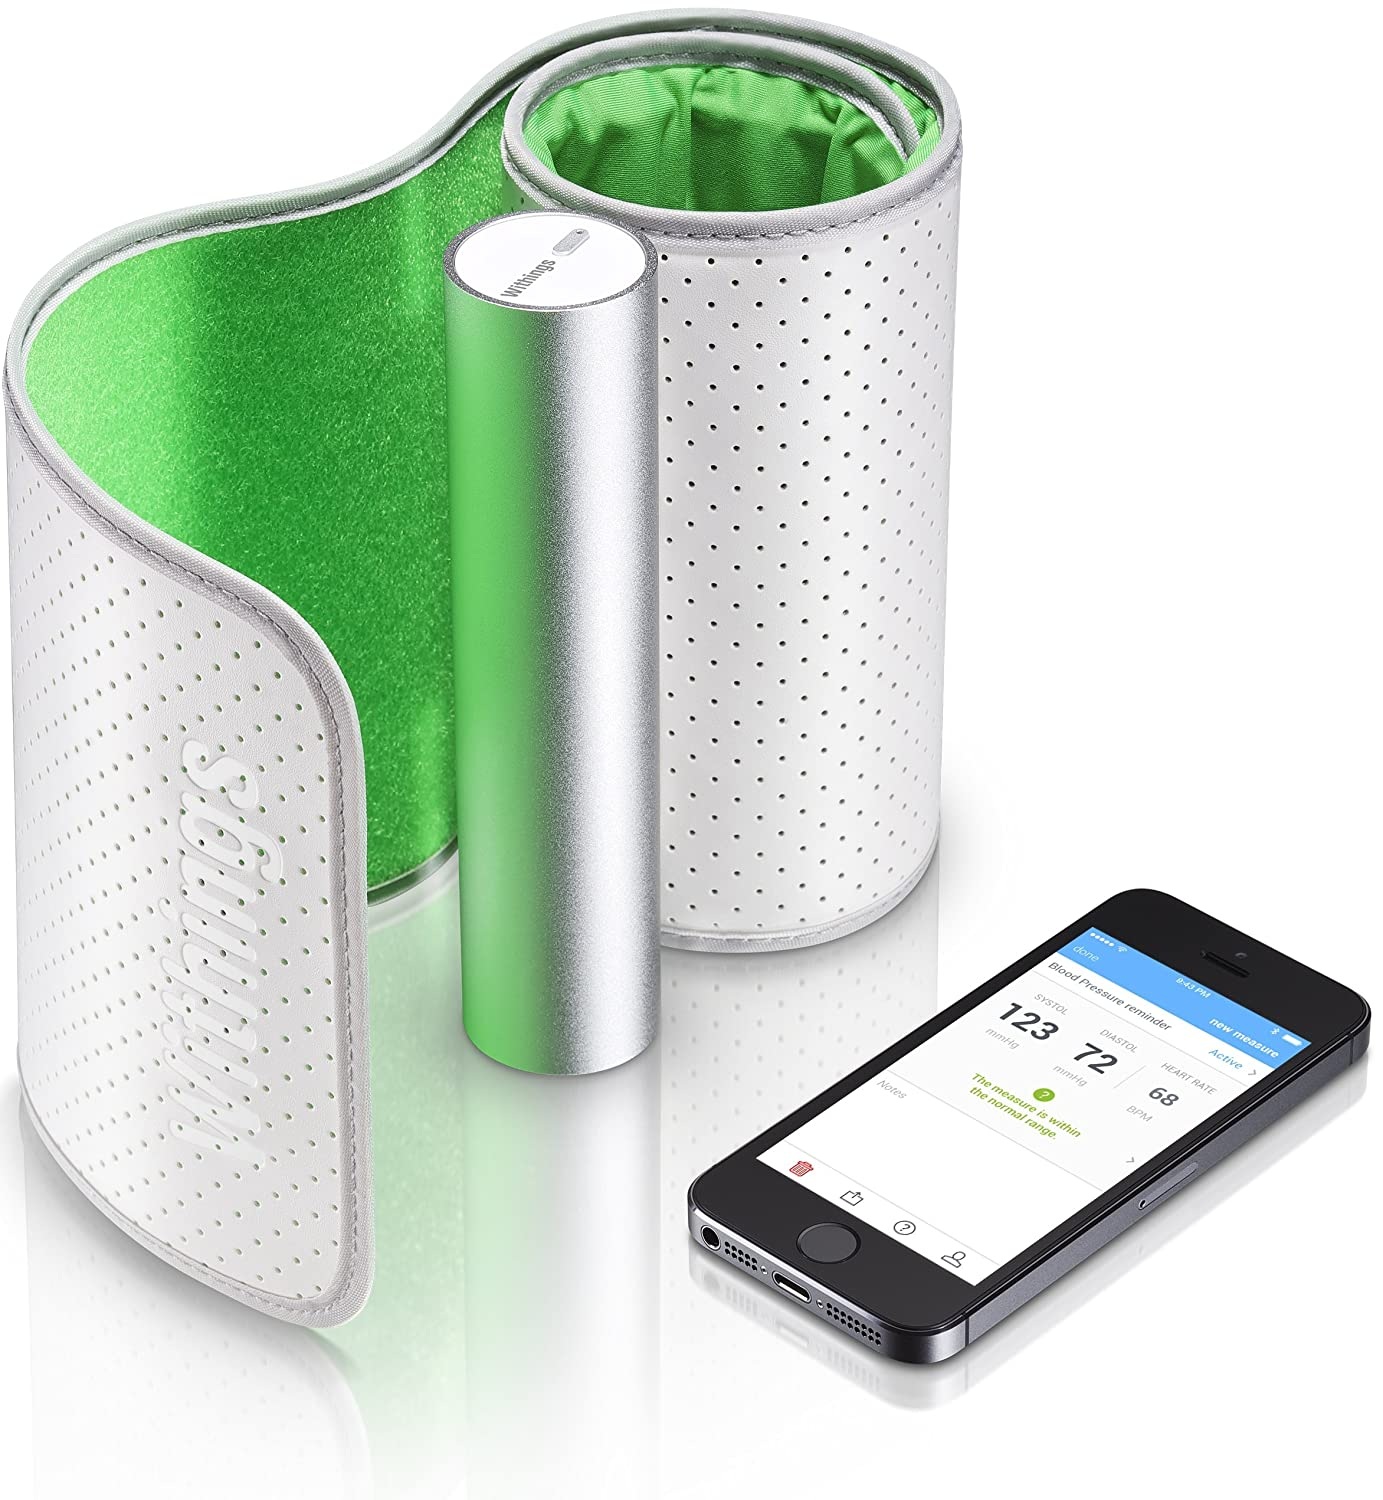 Withings Bluetooth Blood Pressure Cuff